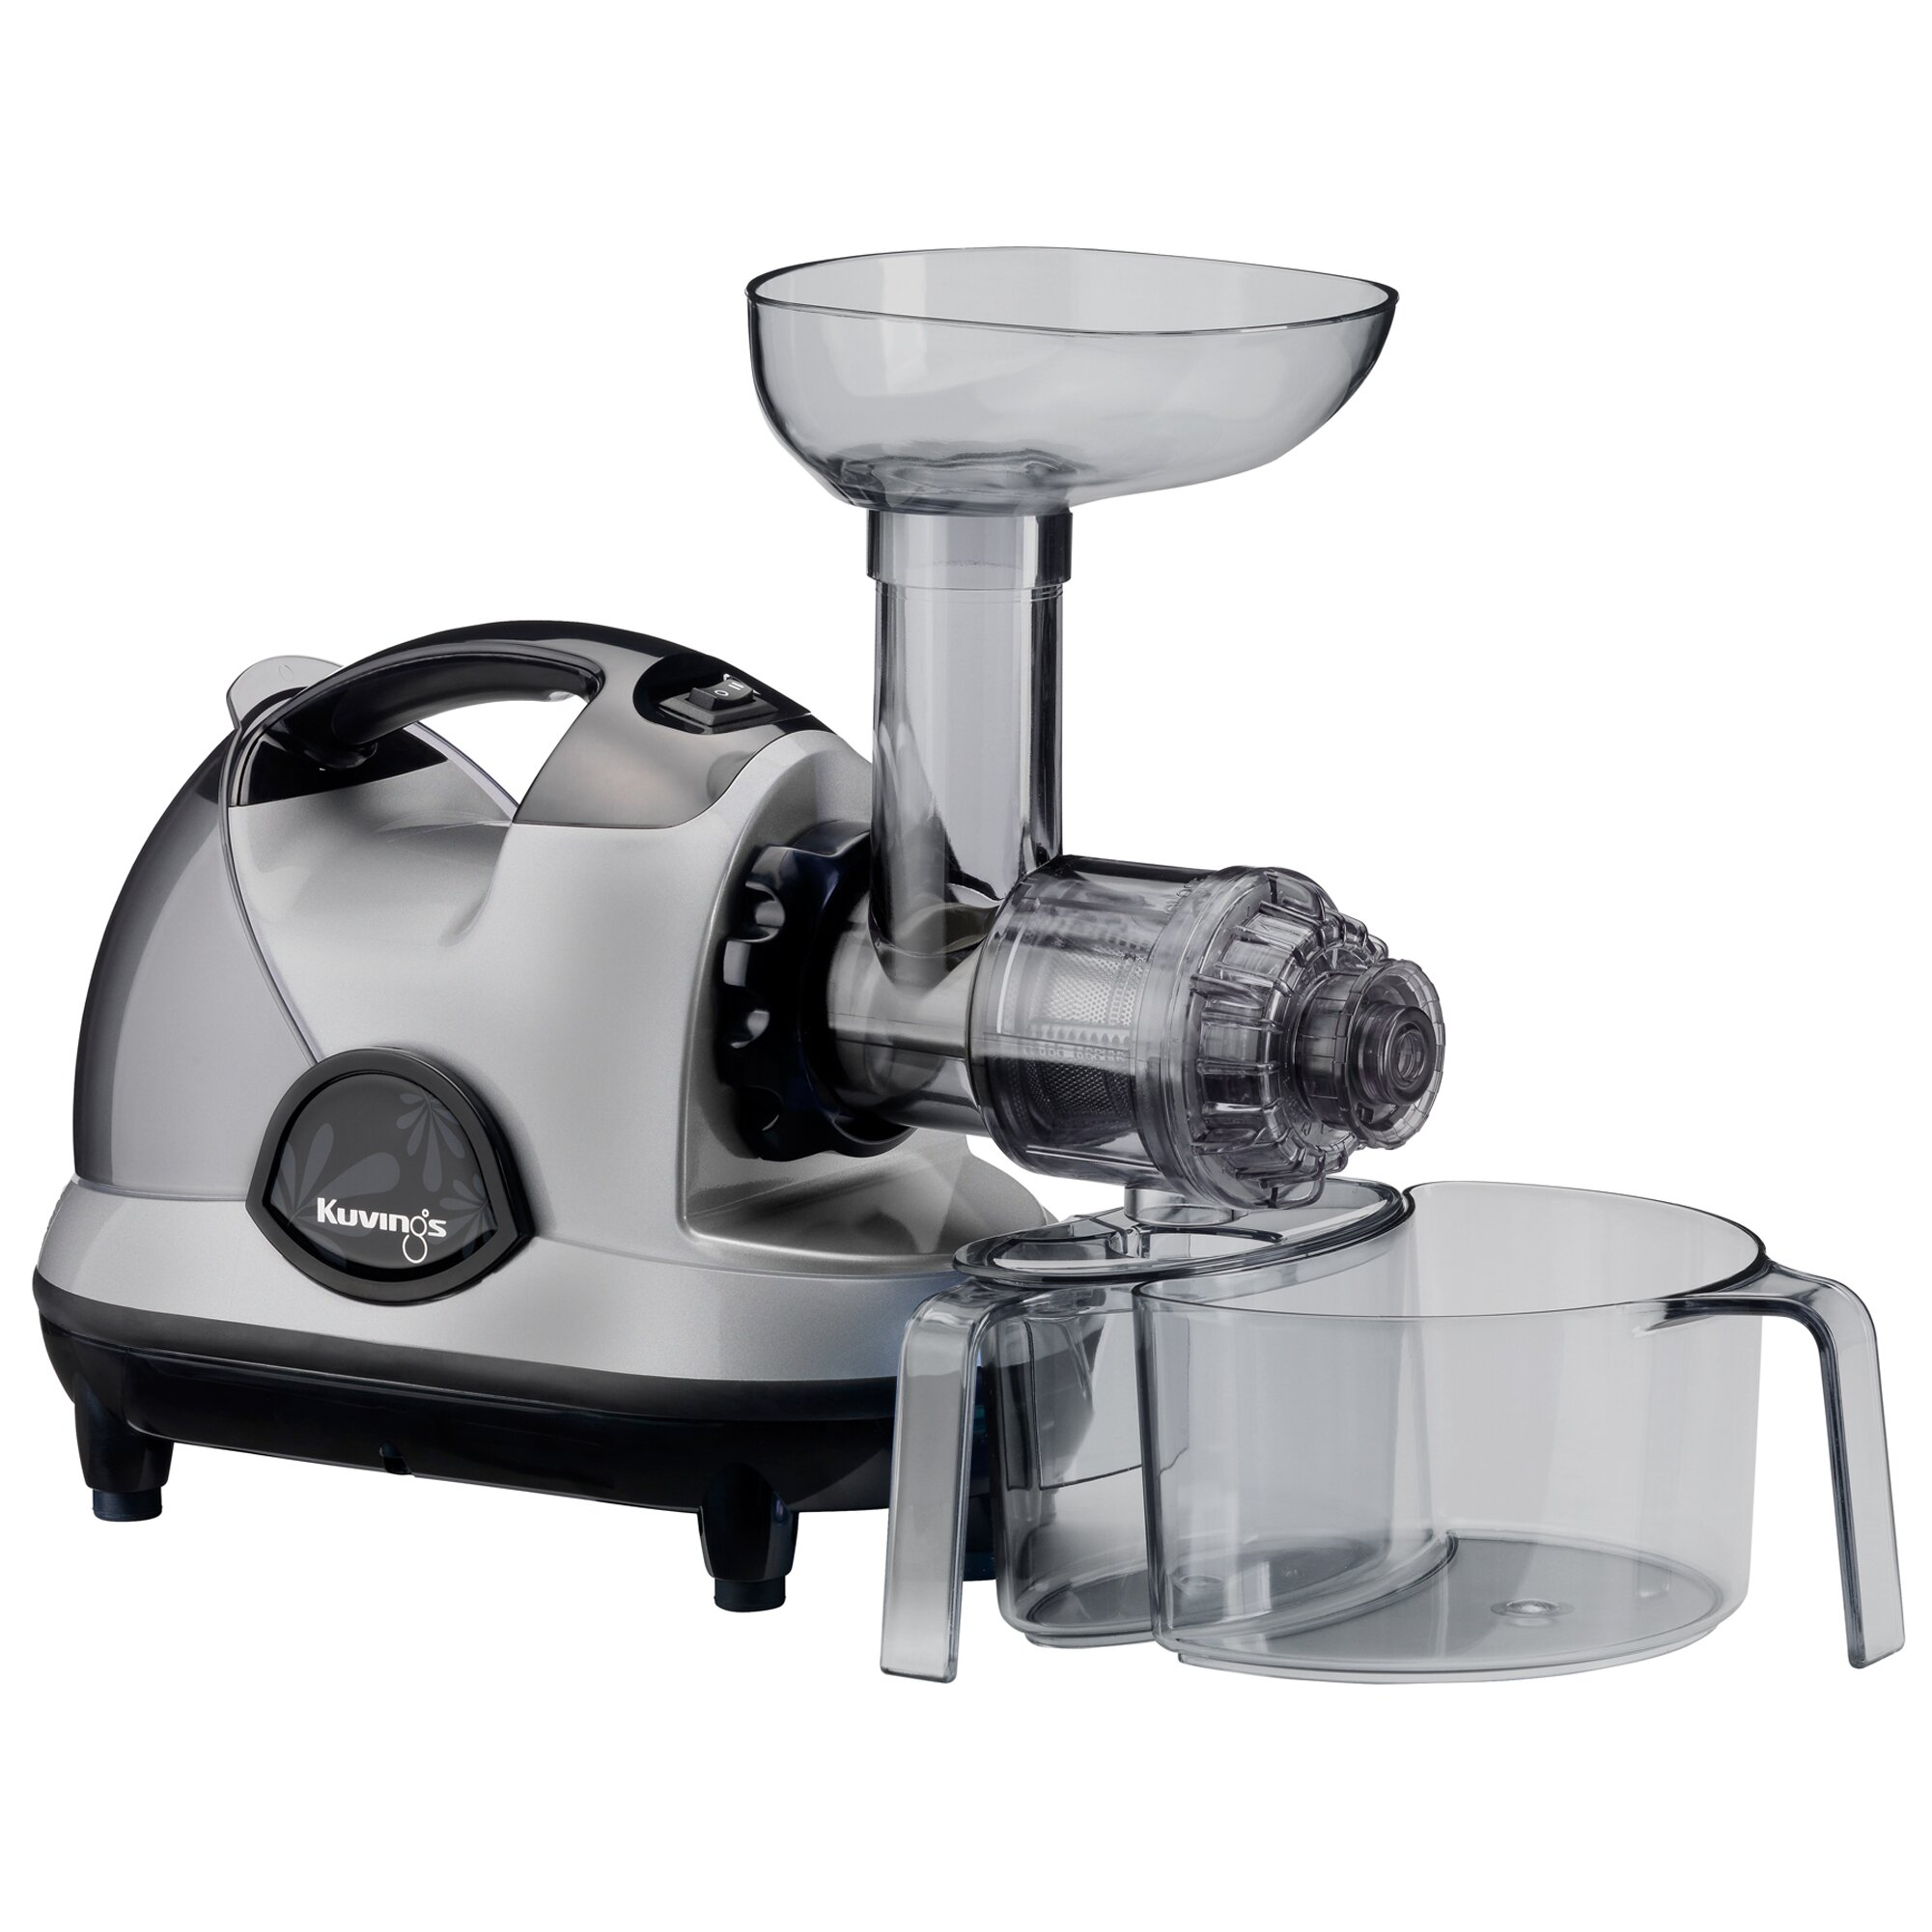 Tefal Infiny Slow Juicer Review : KUvINGS Multi-Purpose Slow Juicer & Reviews Wayfair